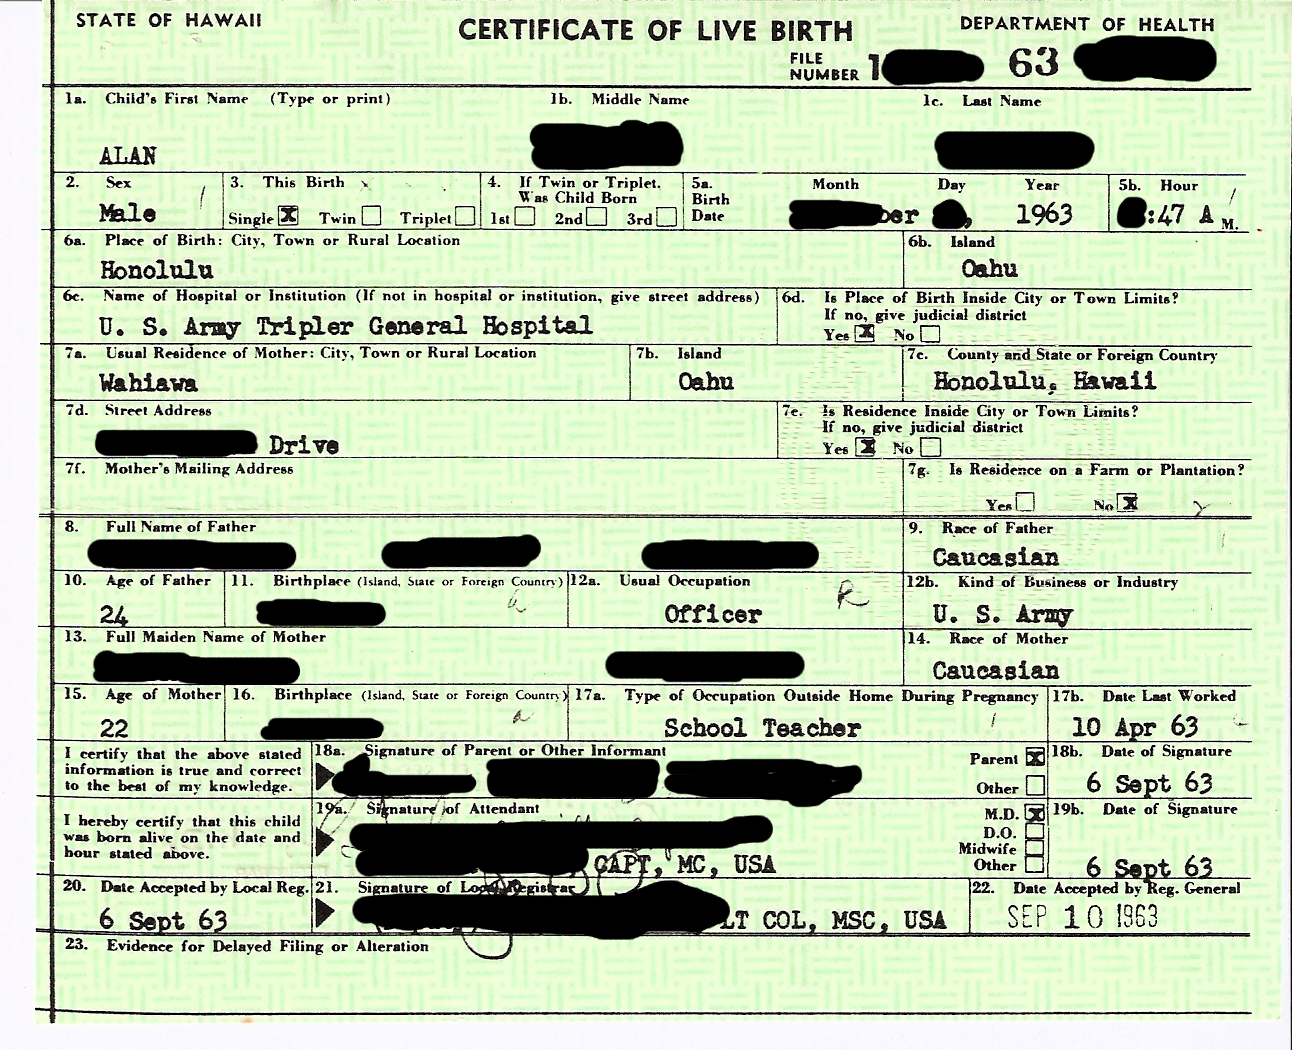 Hawaii birth certificate 1963 snarkybytes hawaii birth certificate 1963 yelopaper